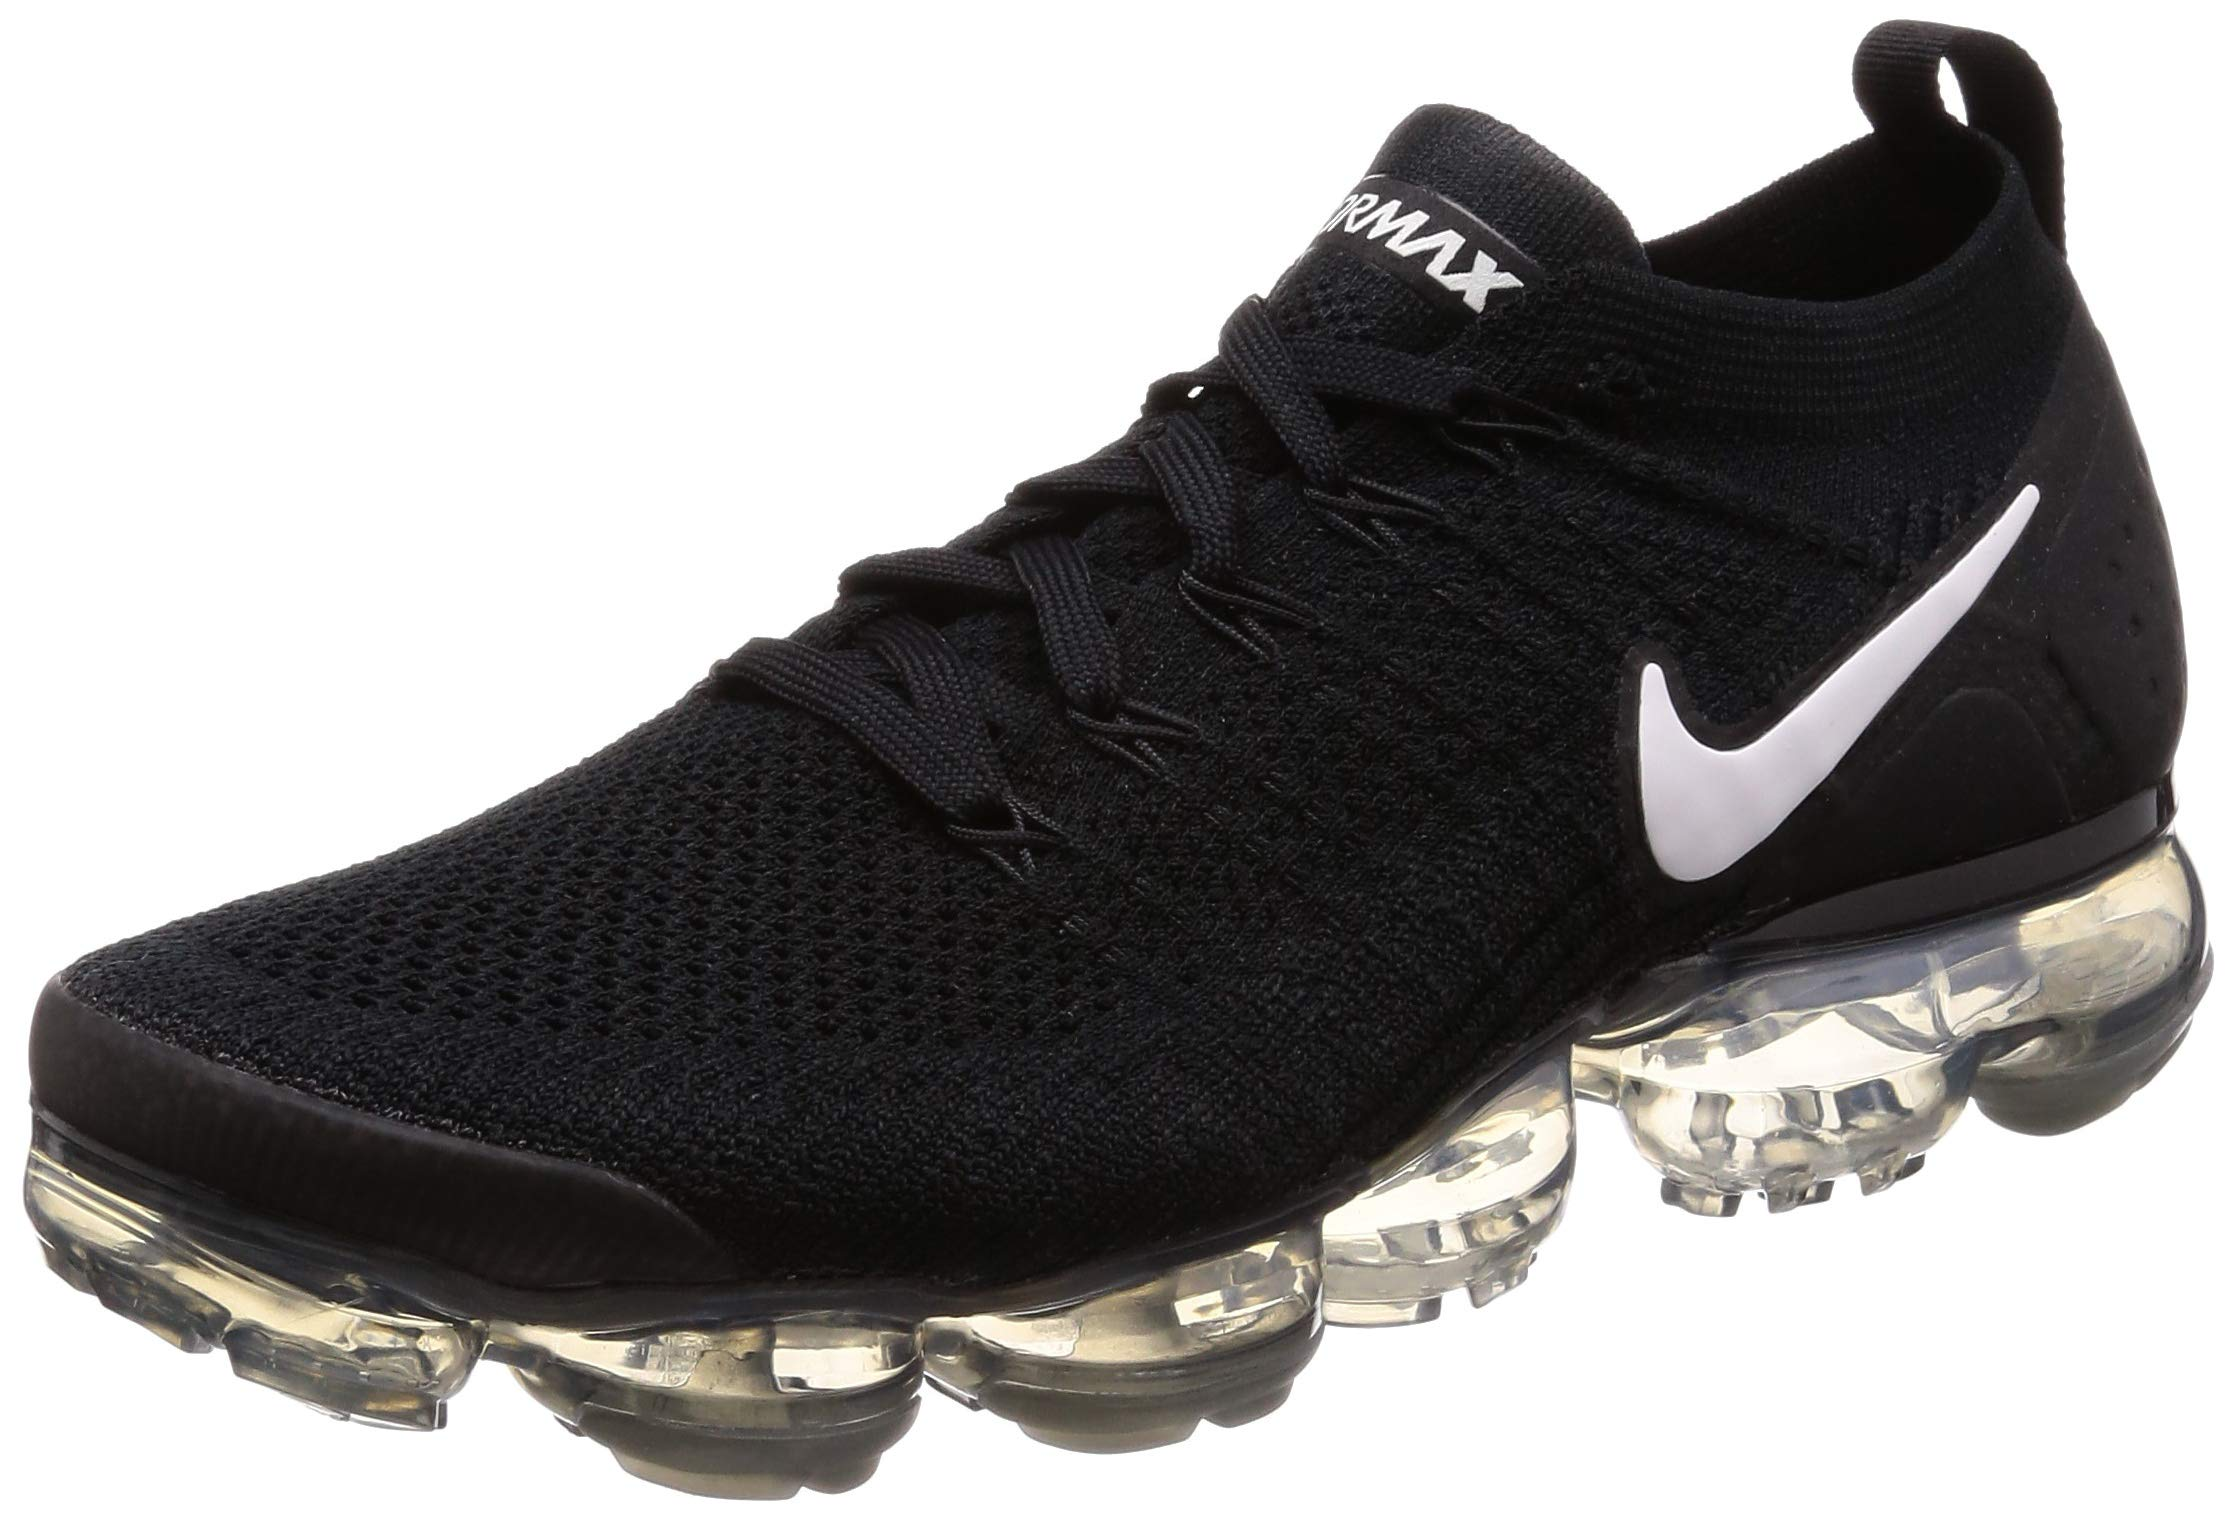 16bac3bbe7094 Galleon - Nike Men s Air Vapormax Flyknit 2 Running Shoes (10.5 ...